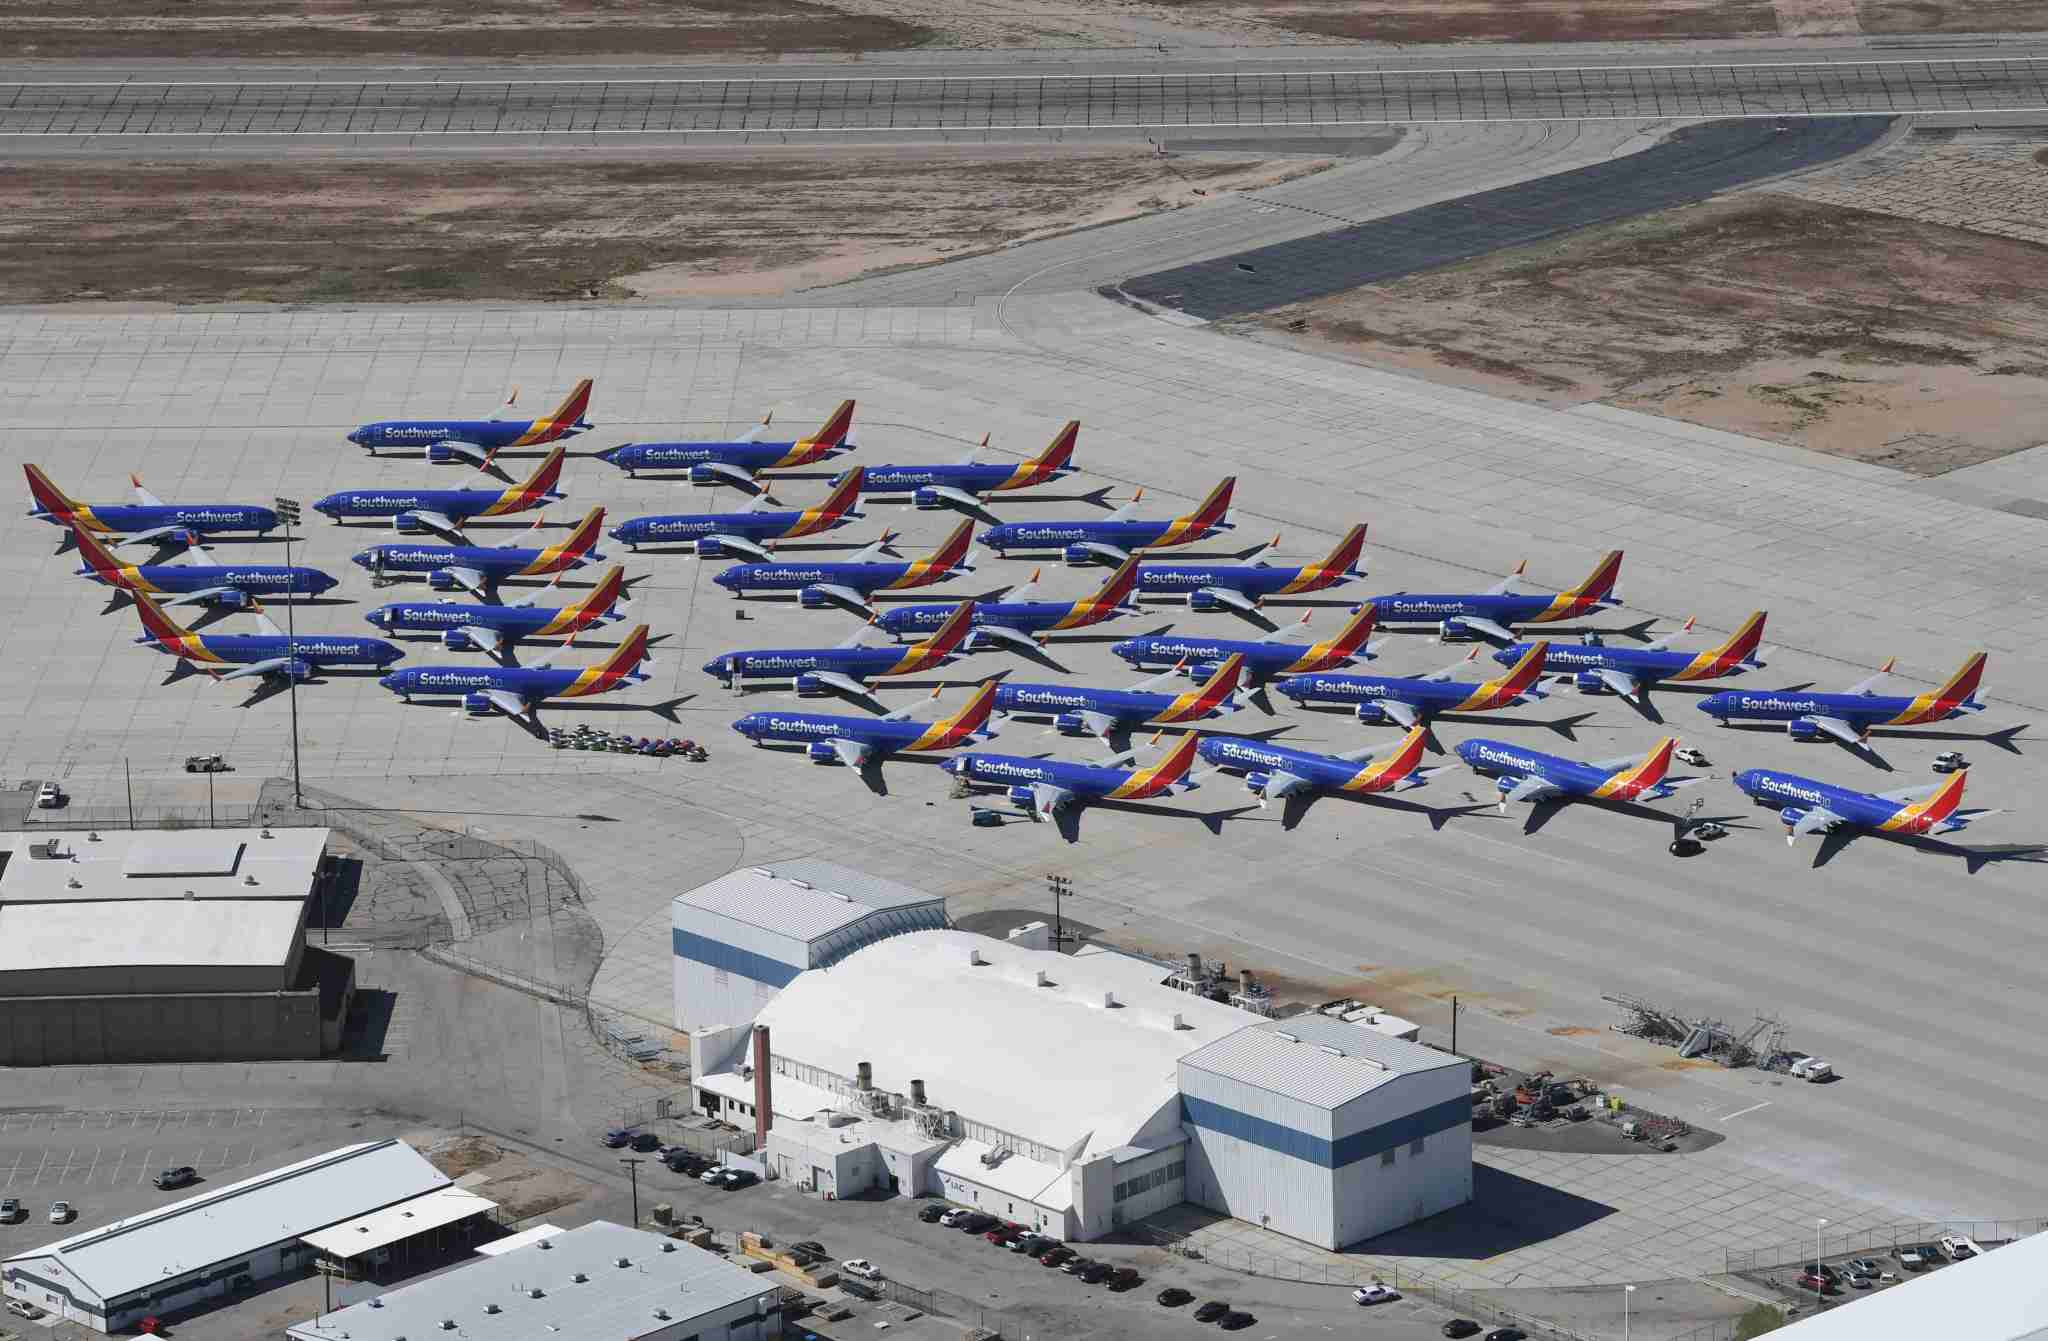 Southwest Airlines Boeing 737 MAX aircraft are parked on the tarmac after being grounded, at the Southern California Logistics Airport in Victorville, California on March 28, 2019. - After two fatal crashes in five months, Boeing is trying hard -- very hard -- to present itself as unfazed by the crisis that surrounds the company. The company